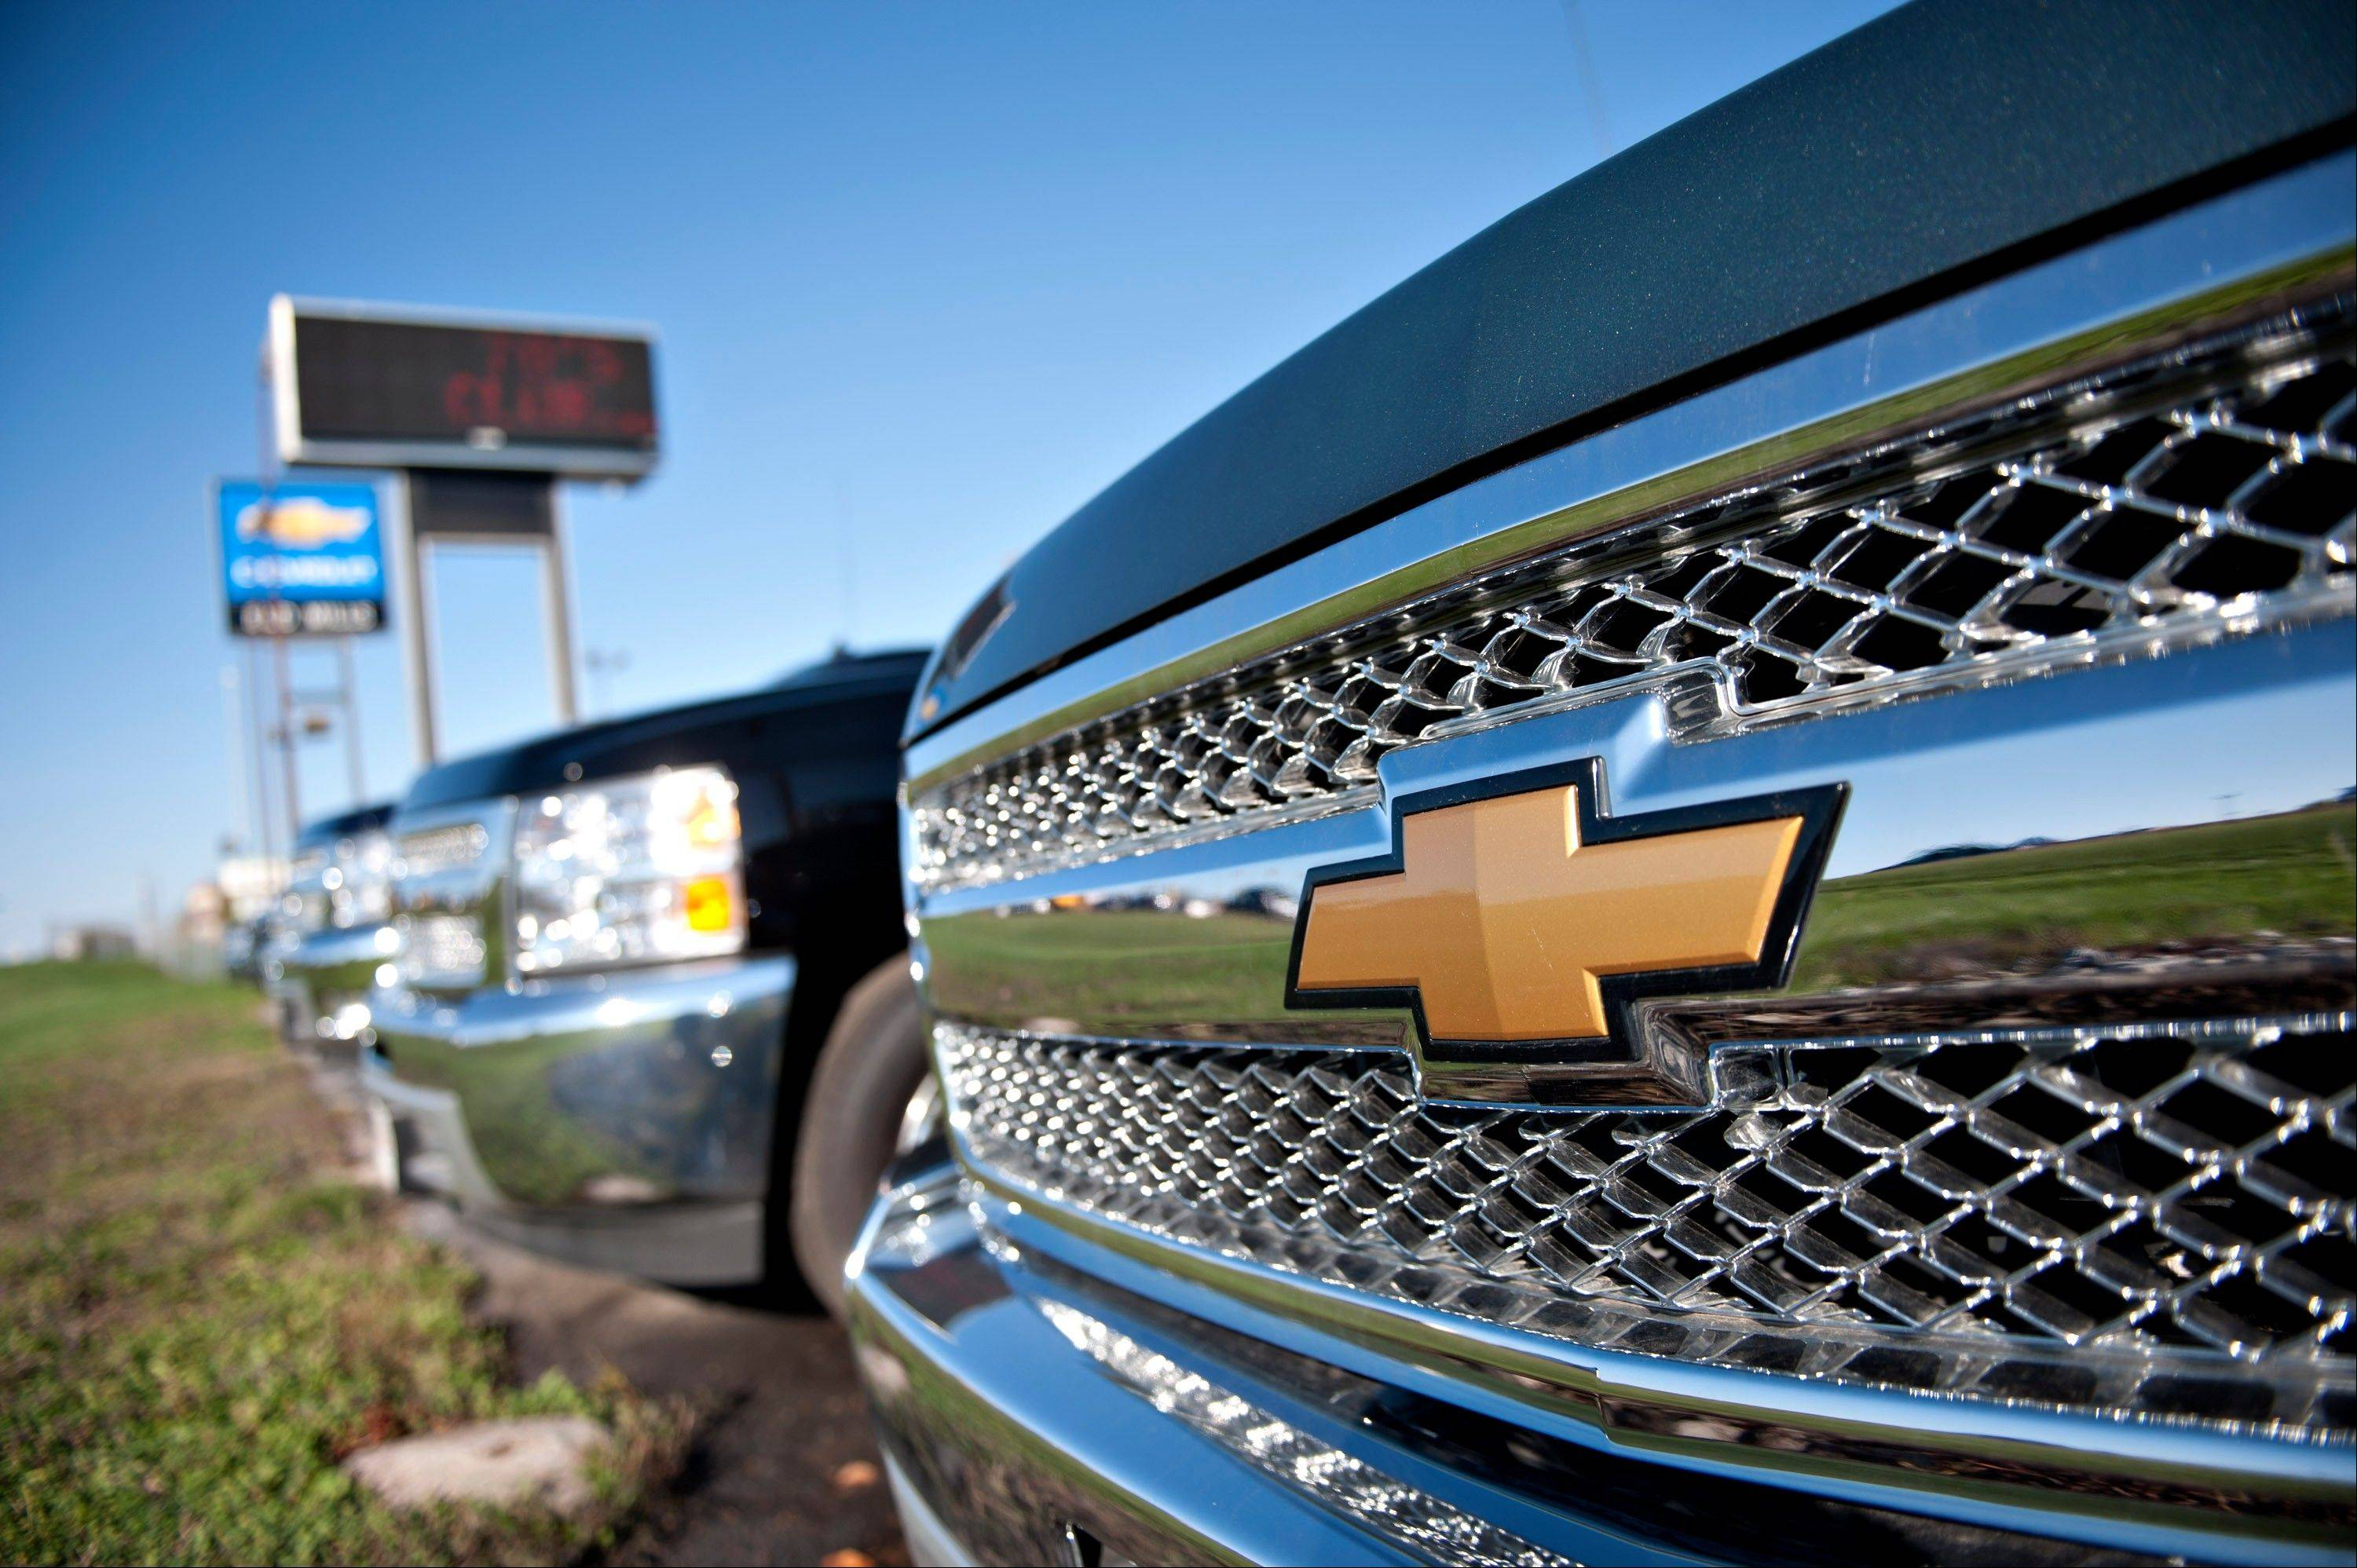 Bloomberg News Chevrolet Silverado trucks sit on the lot at Bud Mills Chevrolet auto dealership Friday in Moline, Ill. The U.S. Census Bureau will release figures on domestic auto sales on Nov. 1.